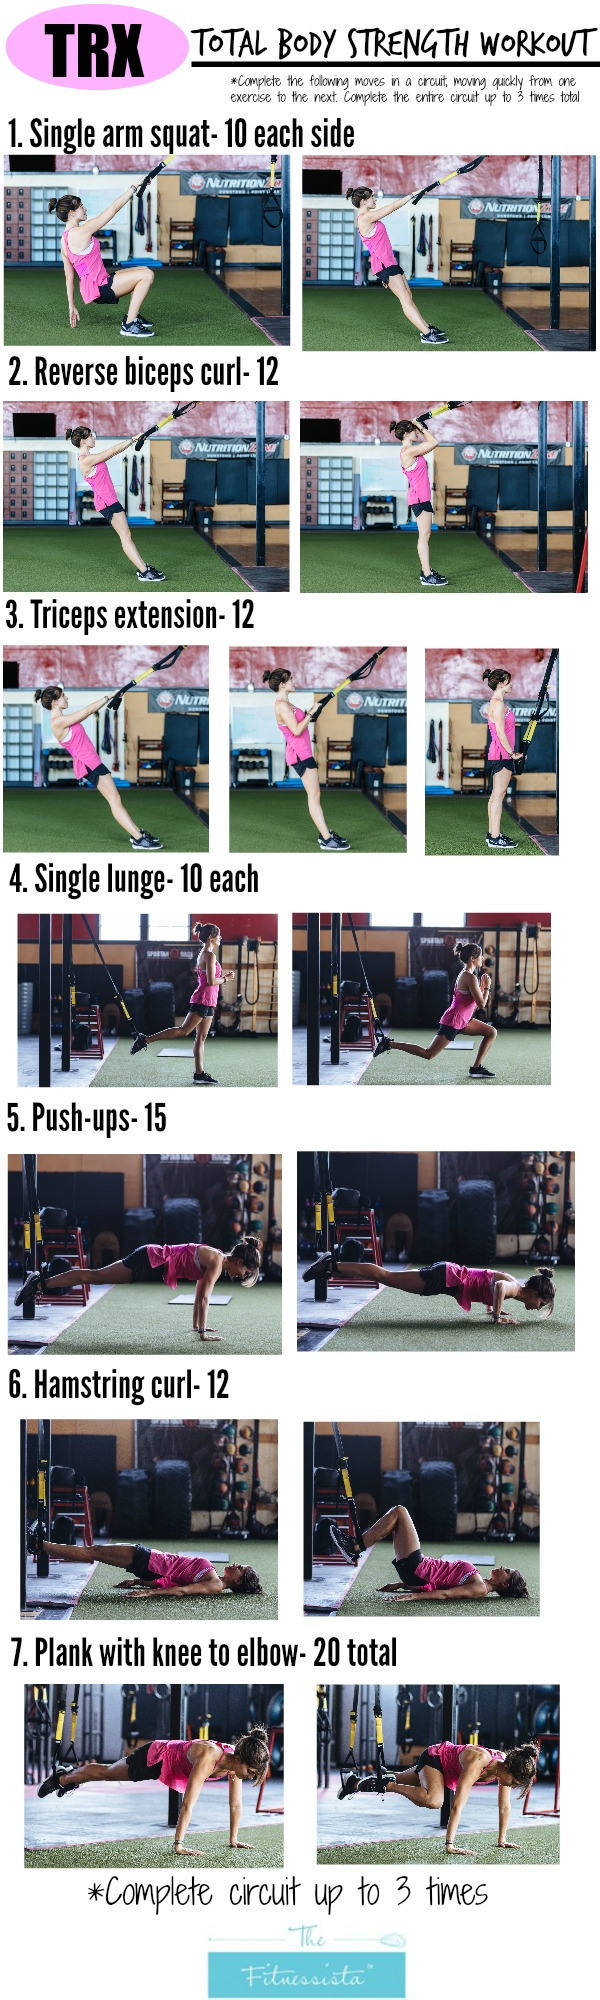 Trx total body circuit